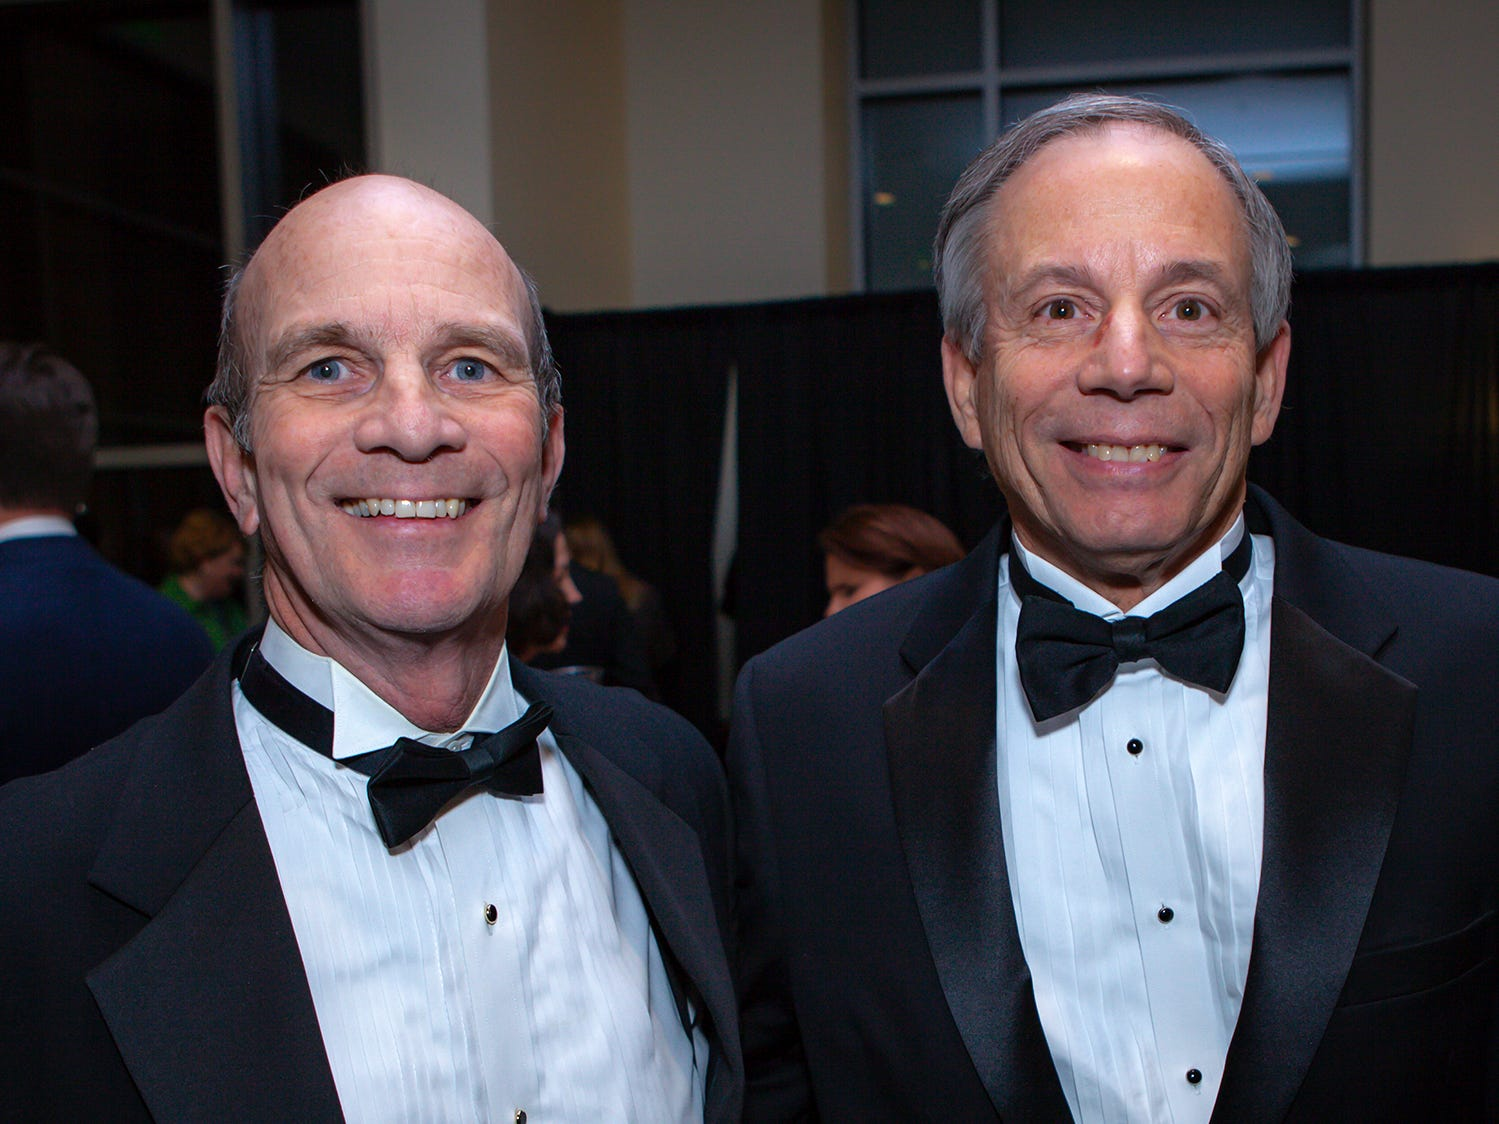 Ben Hall McFarland and John Harney at the 2019 Excellence in Education Gala, hosted by the City Schools Foundation on Friday, Jan. 25, 2019 at Stones River Country Club in Murfreesboro.